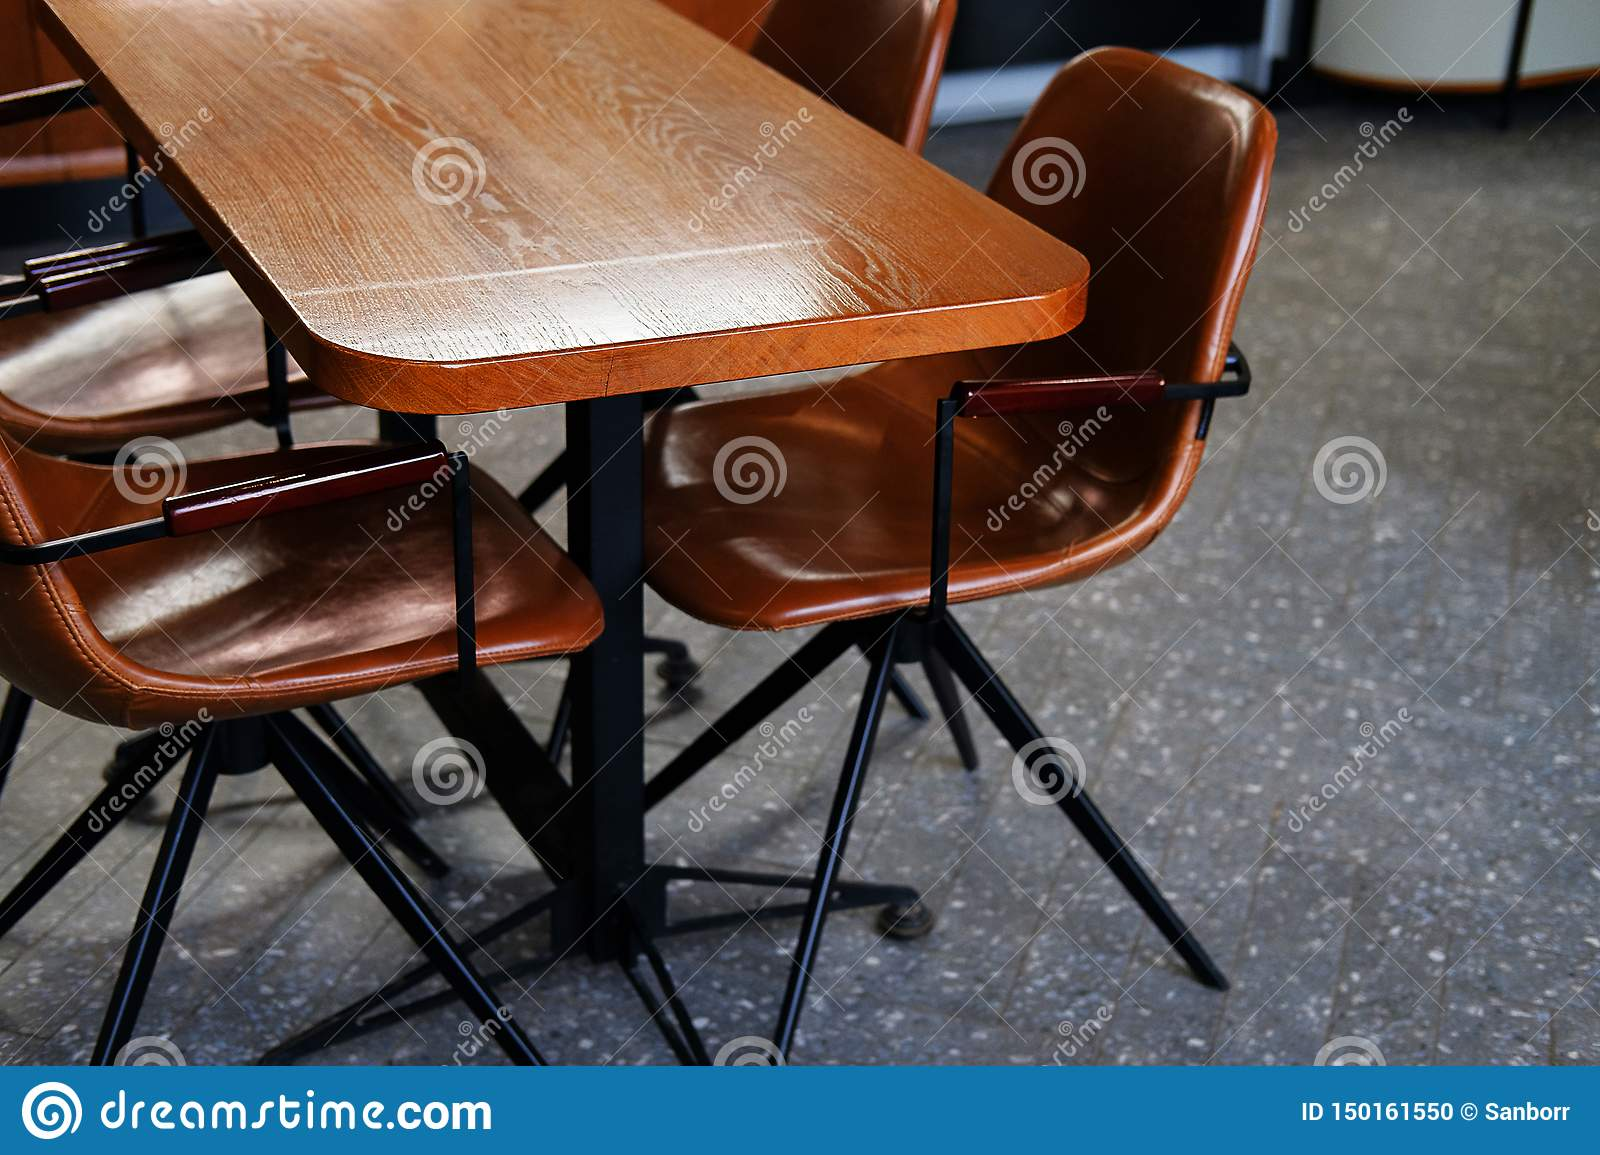 Super Wooden Table And Leather Chairs Or Chairs In A Cafe Office Gmtry Best Dining Table And Chair Ideas Images Gmtryco